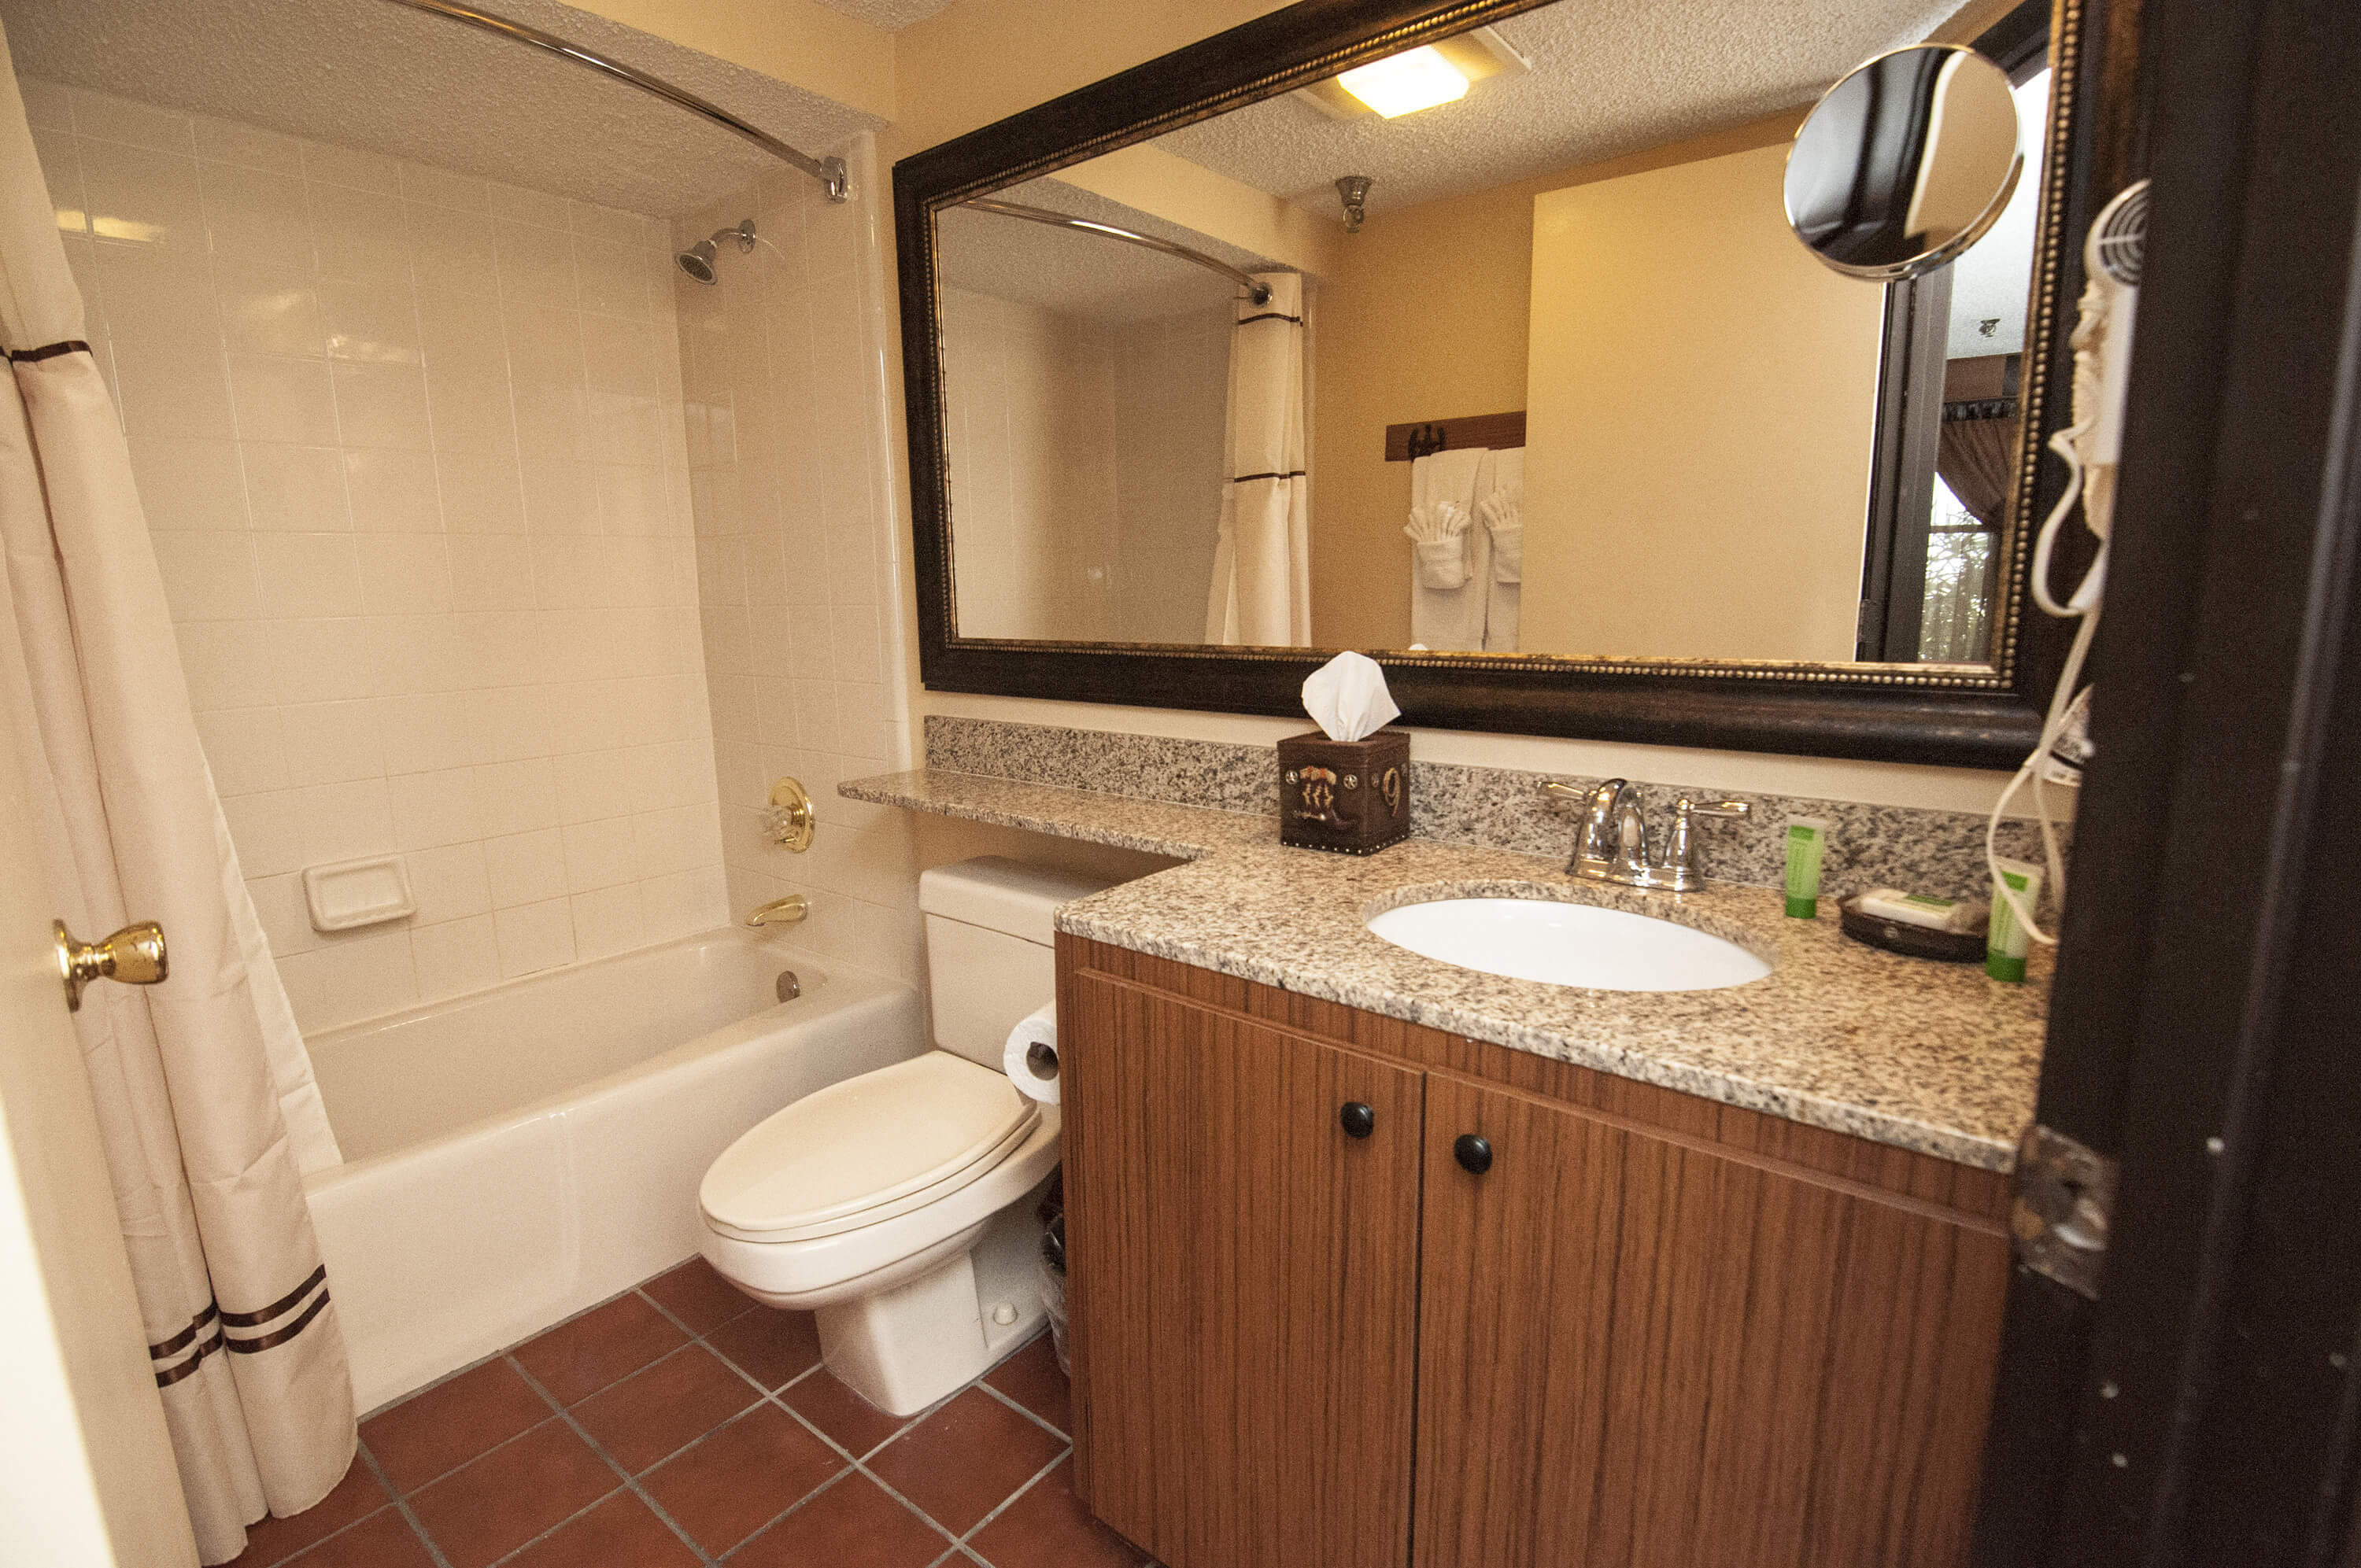 Bathroom in Lodge Guest Room |  Westgate River Ranch Resort & Rodeo | Westgate Resorts